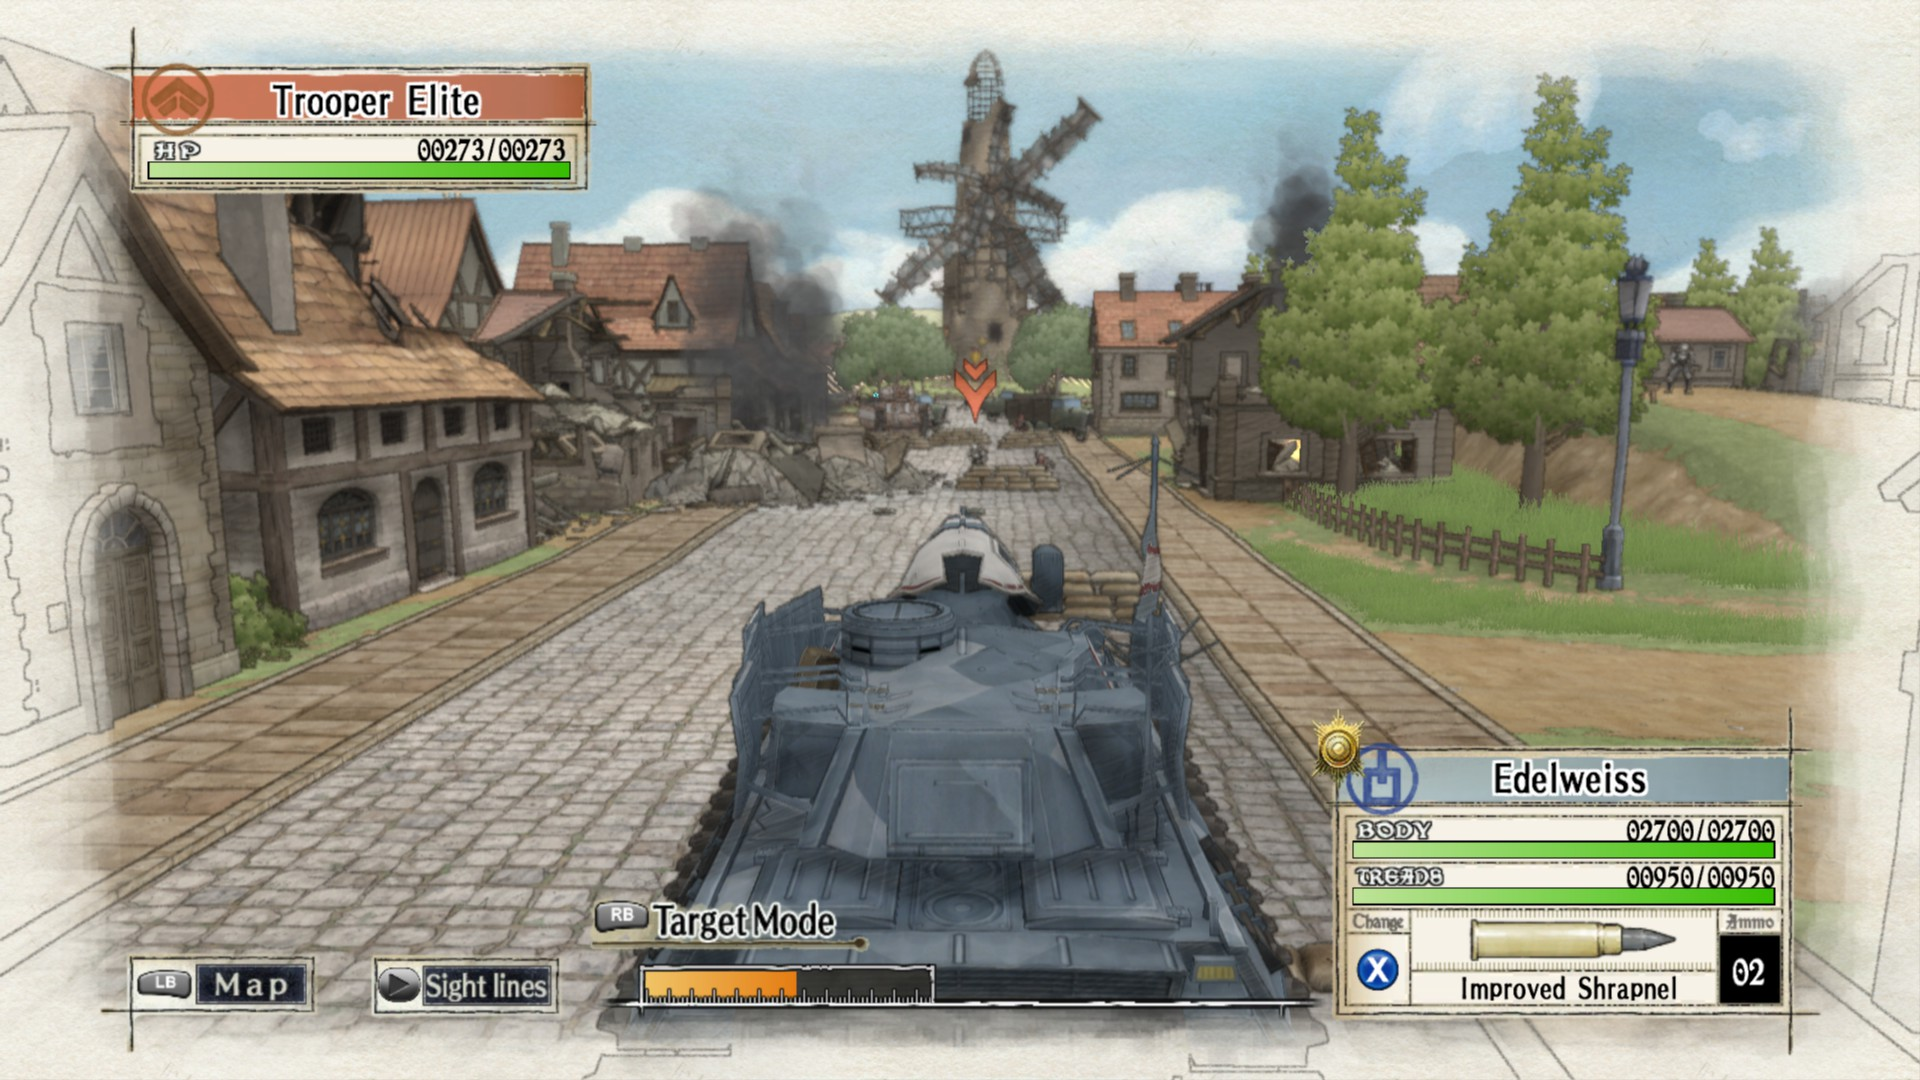 1515945160 763 valkyria chronicles torrent download crotorrents - Valkyria Chronicles Torrent Download - CroTorrents